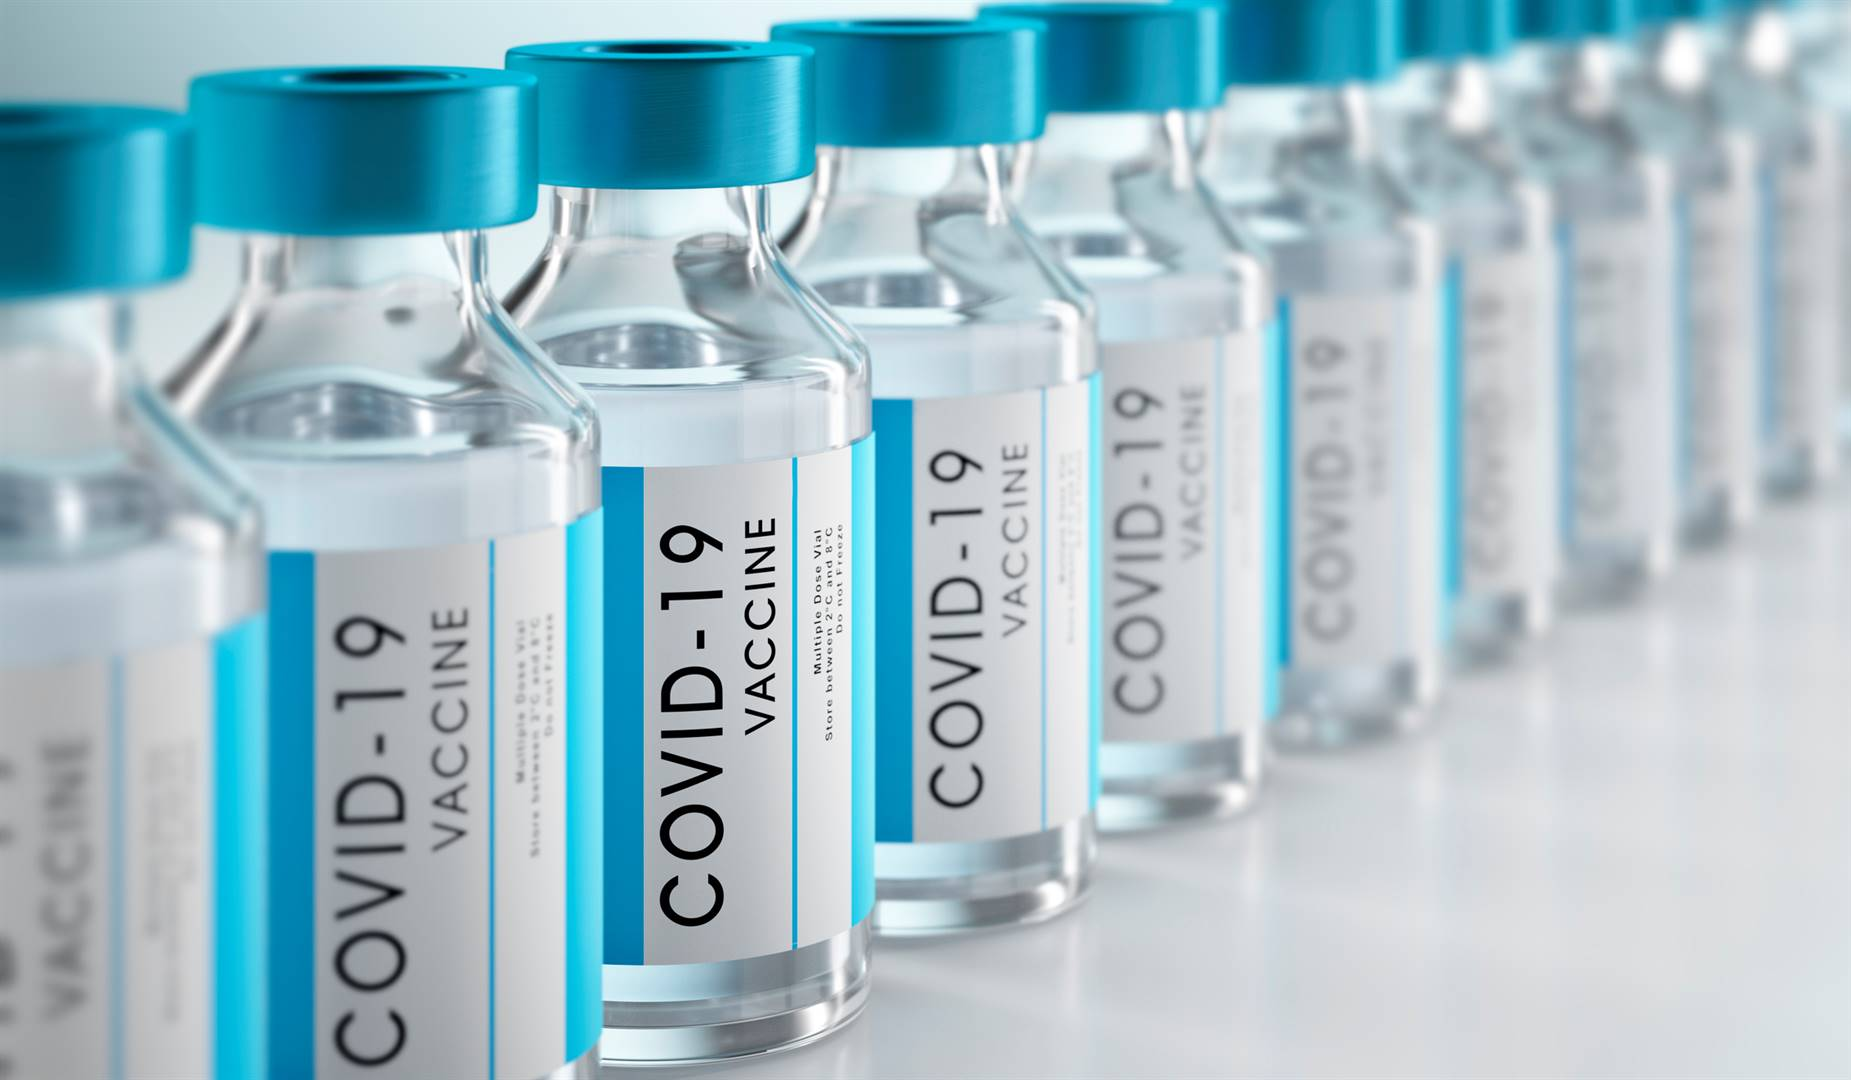 President Cyril Ramaphosa said the government was endeavouring to be more transparent in its communication about the Covid-19 vaccine procurement. Picture: iStock/Gallo Images